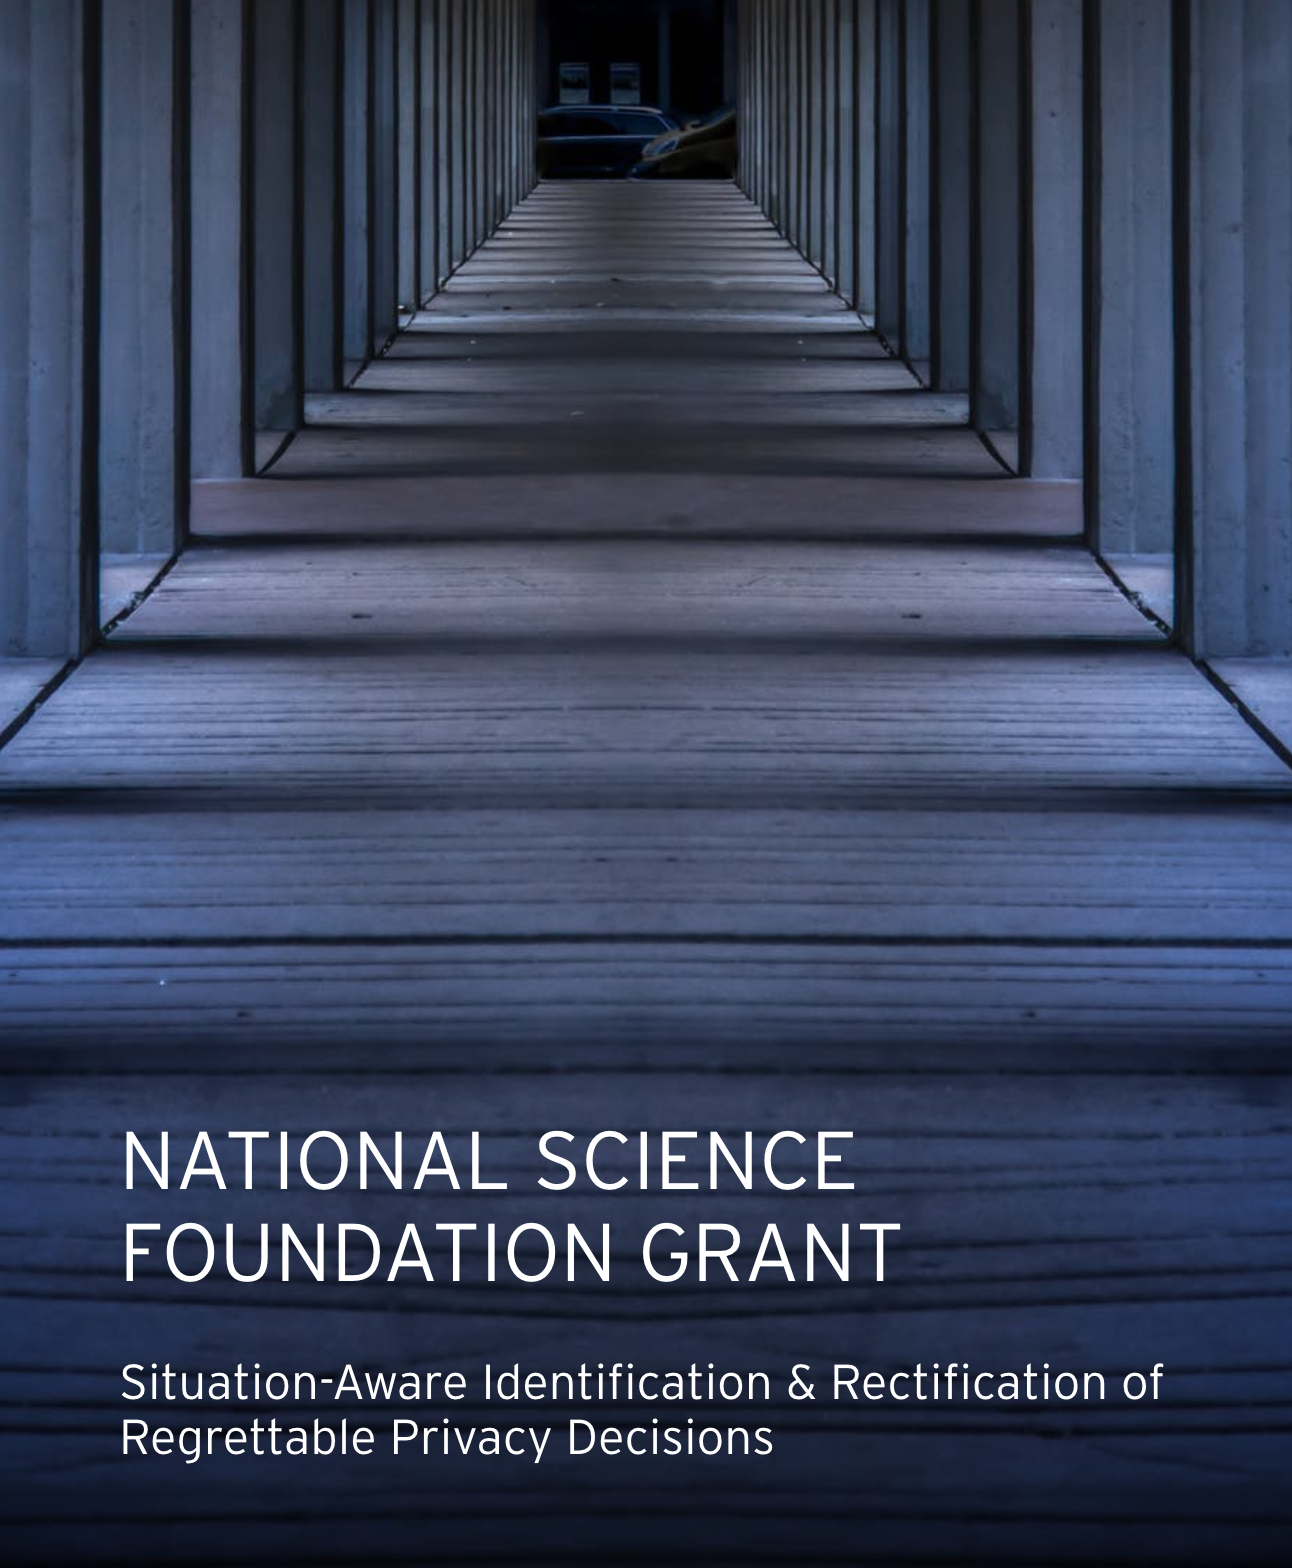 NATIONAL SCIENCE FOUNDATION GRANT  Situation-Aware Identification and Rectification of Regrettable Privacy Decisions